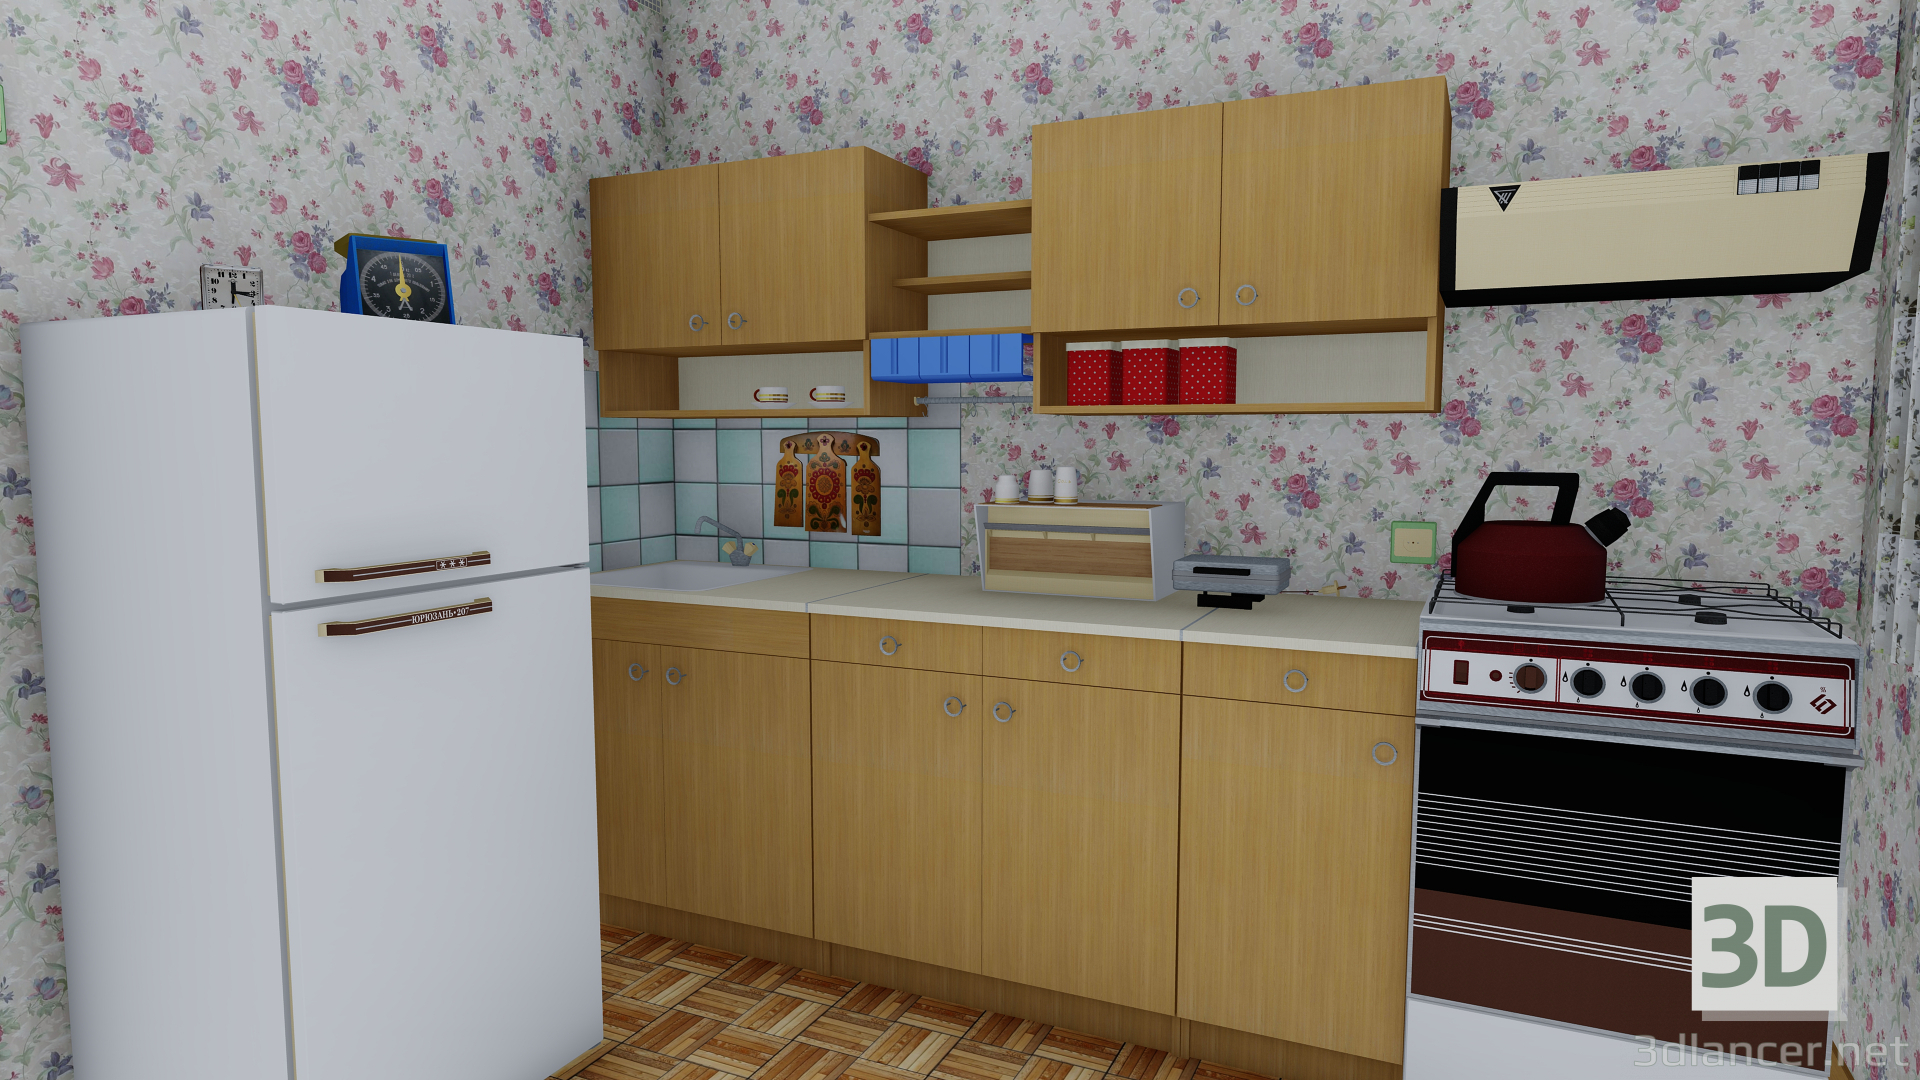 3d Panel five-story building with a Soviet apartment from the 80s model buy - render